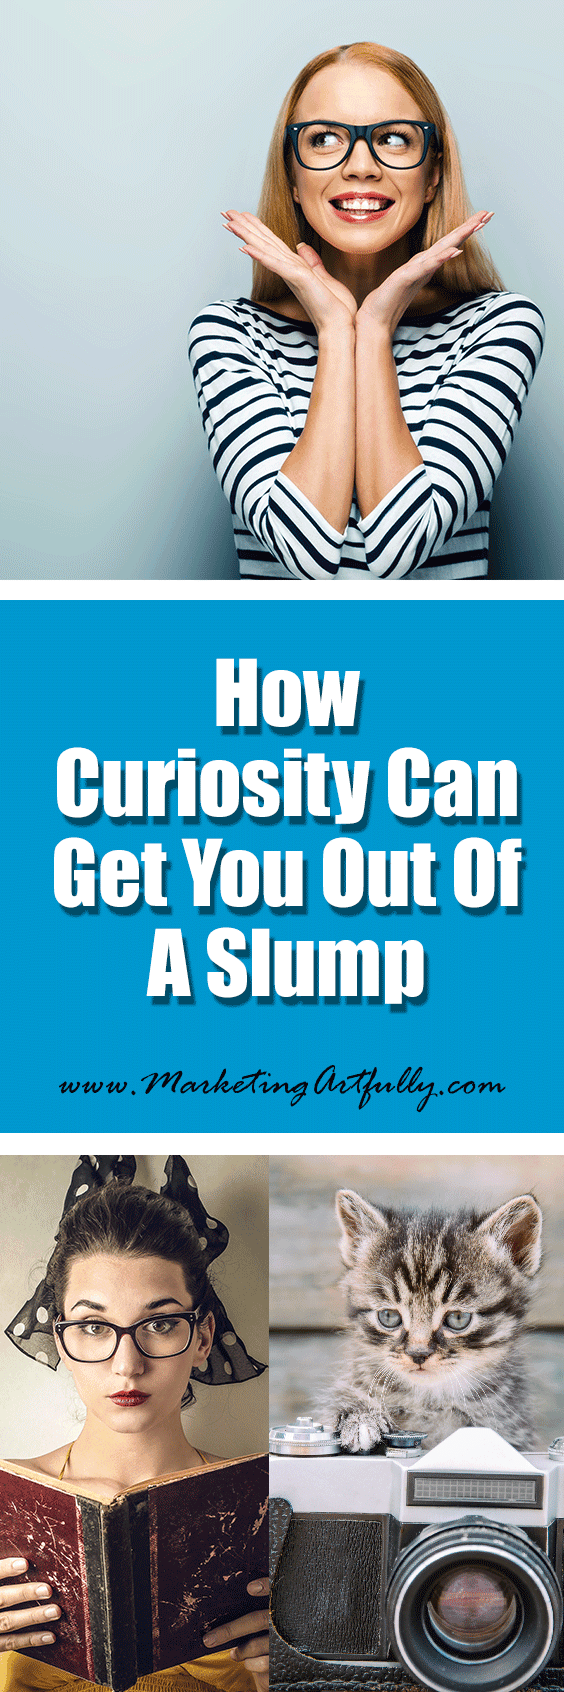 How Curiosity Can Get You Out of A Slump | Entrepreneur Marketing Mindset ... Just these last two weeks I hit a wall, fell off the wagon, lost my way. Usually I am the Energizer Bunny of business, churning out blog posts, working for my clients and generally being a work-a-holic. Then we decided to move and the wheels fell off!